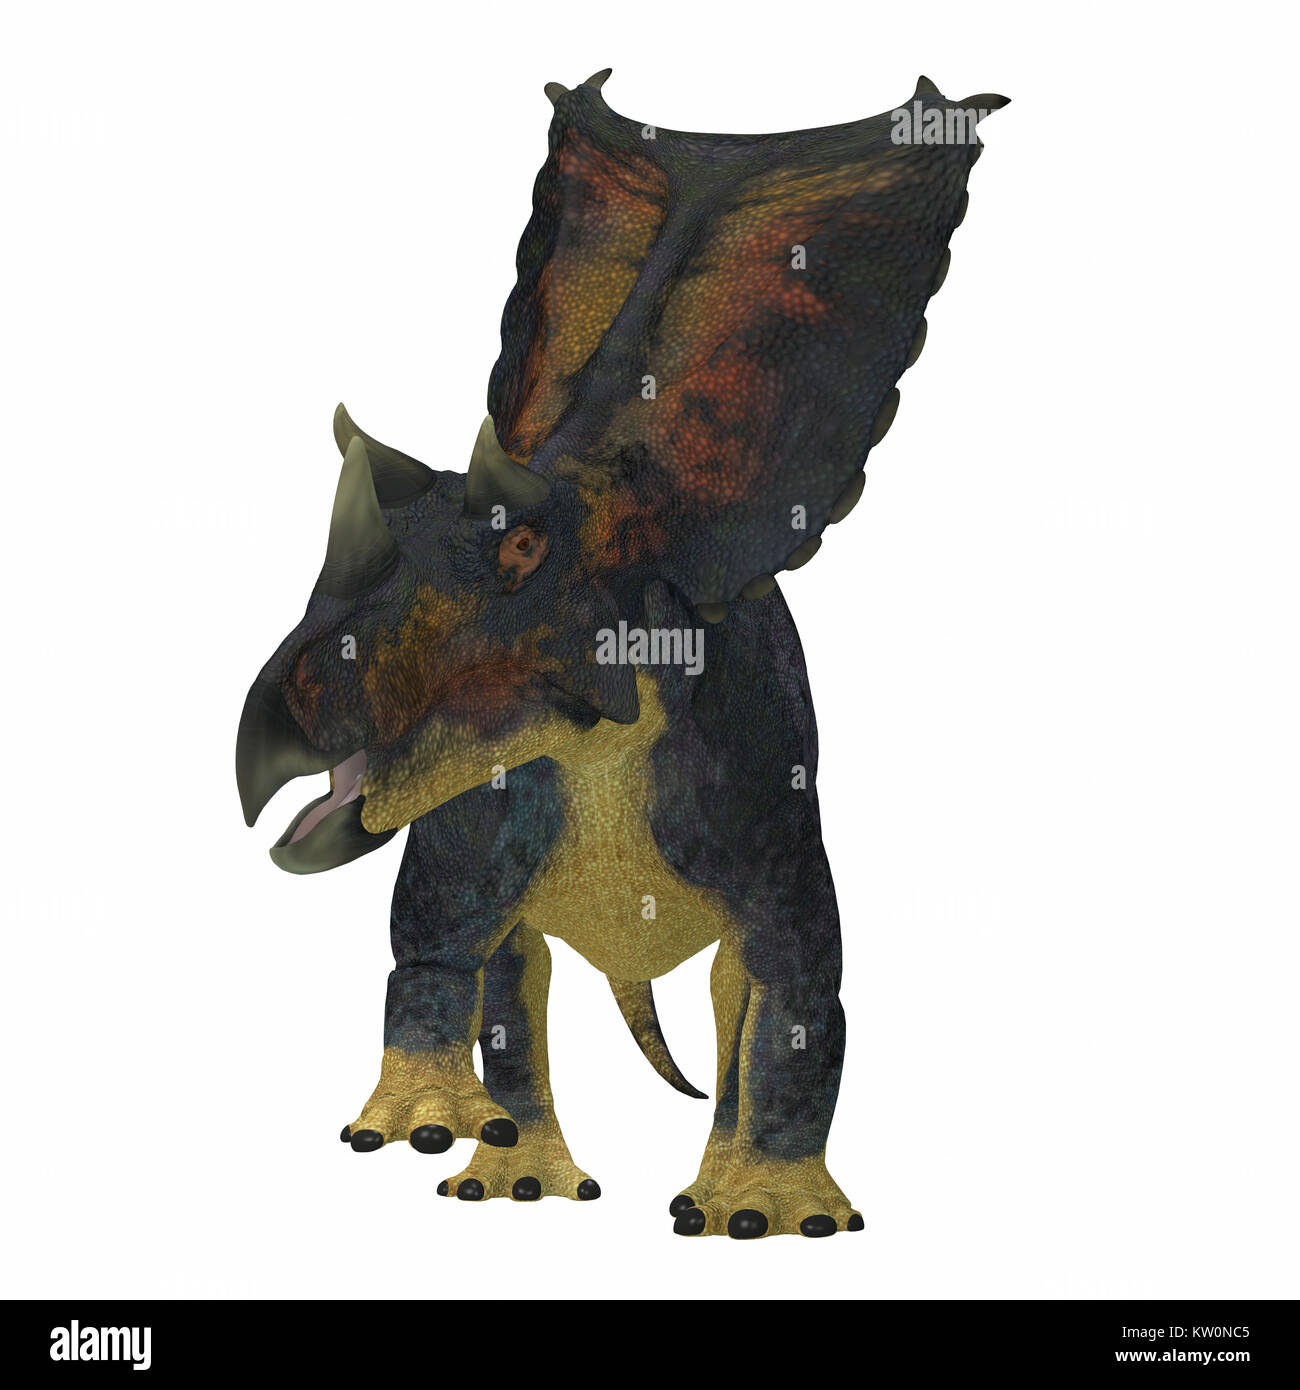 Chasmosaurus Dinosaur on White - Chasmosaurus was a herbivorous ceratopsian dinosaur that lived in Alberta, Canada - Stock Image